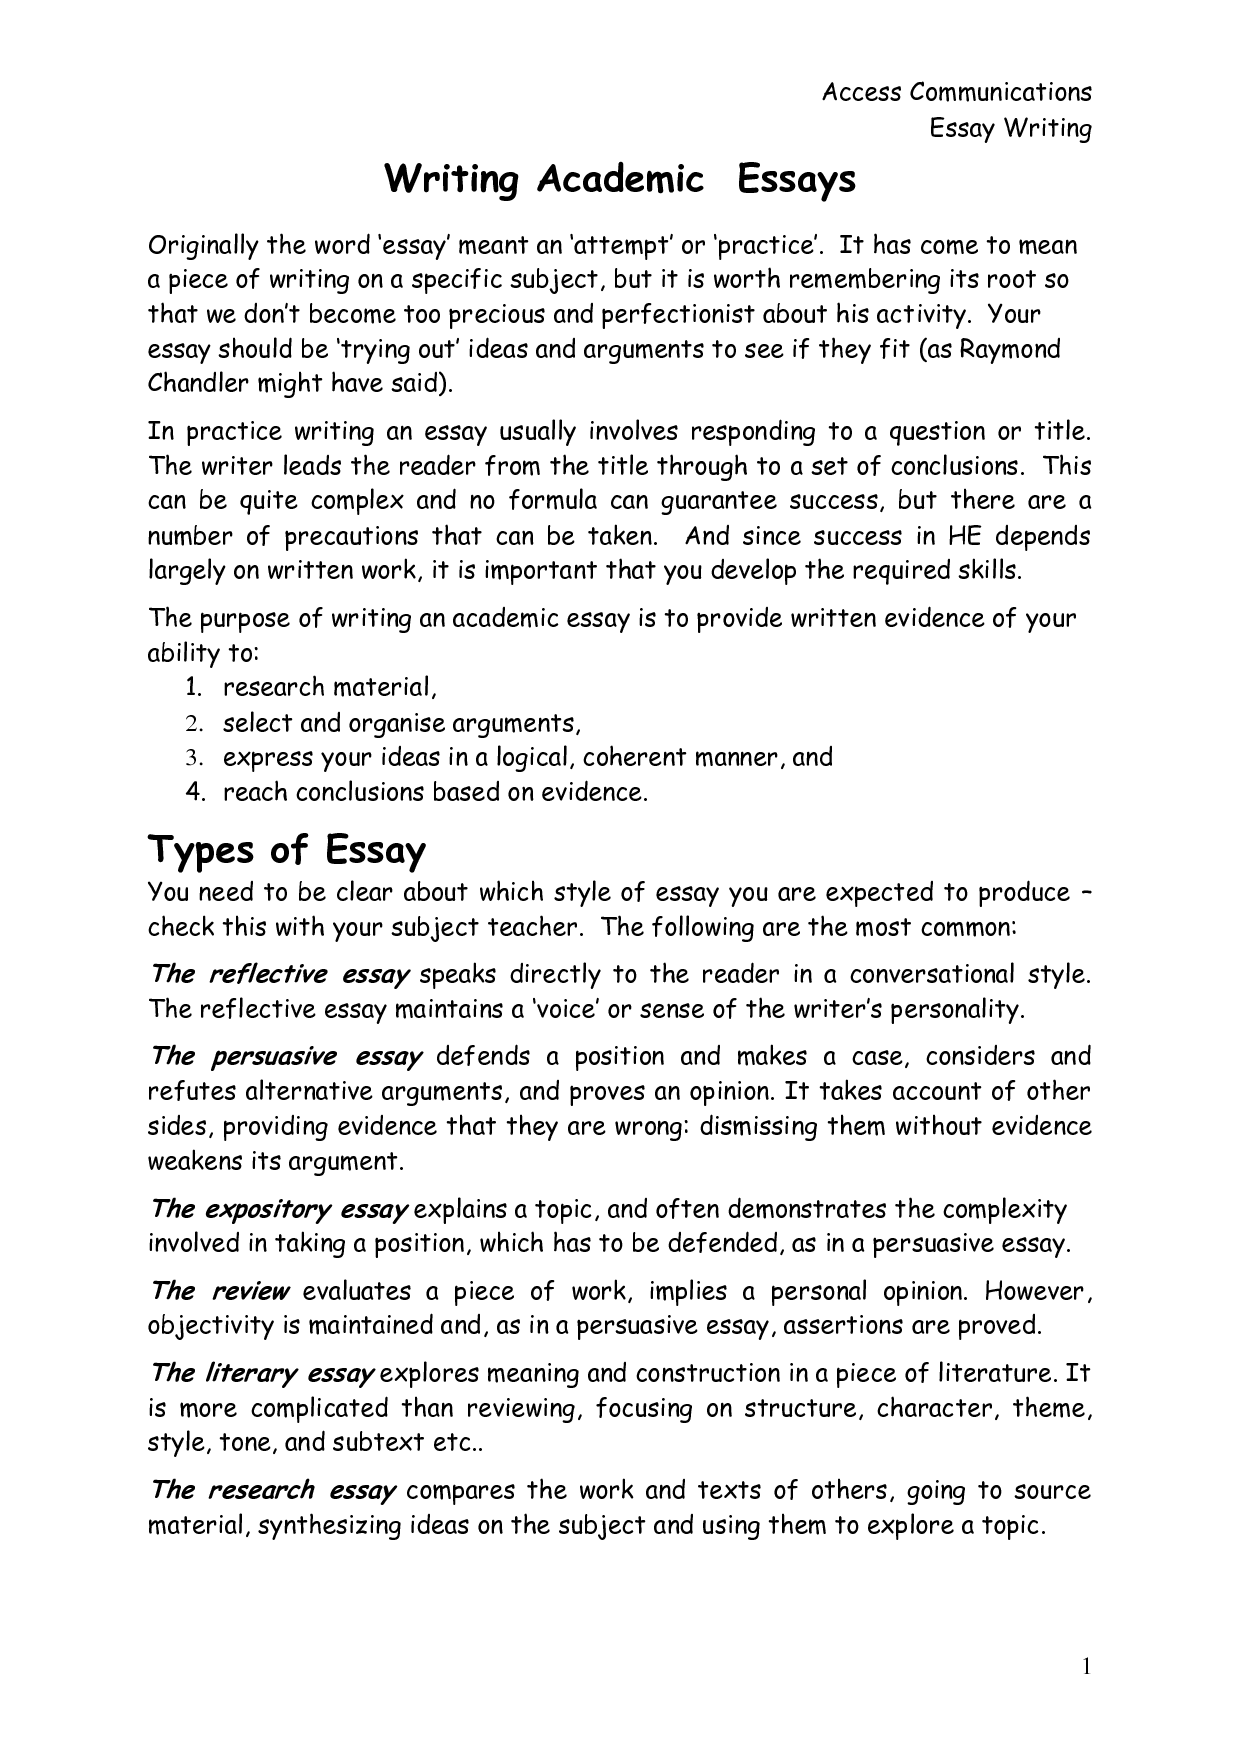 017 Essay Example Write For Me Amazing College My Cheap Uk Discount Code Full